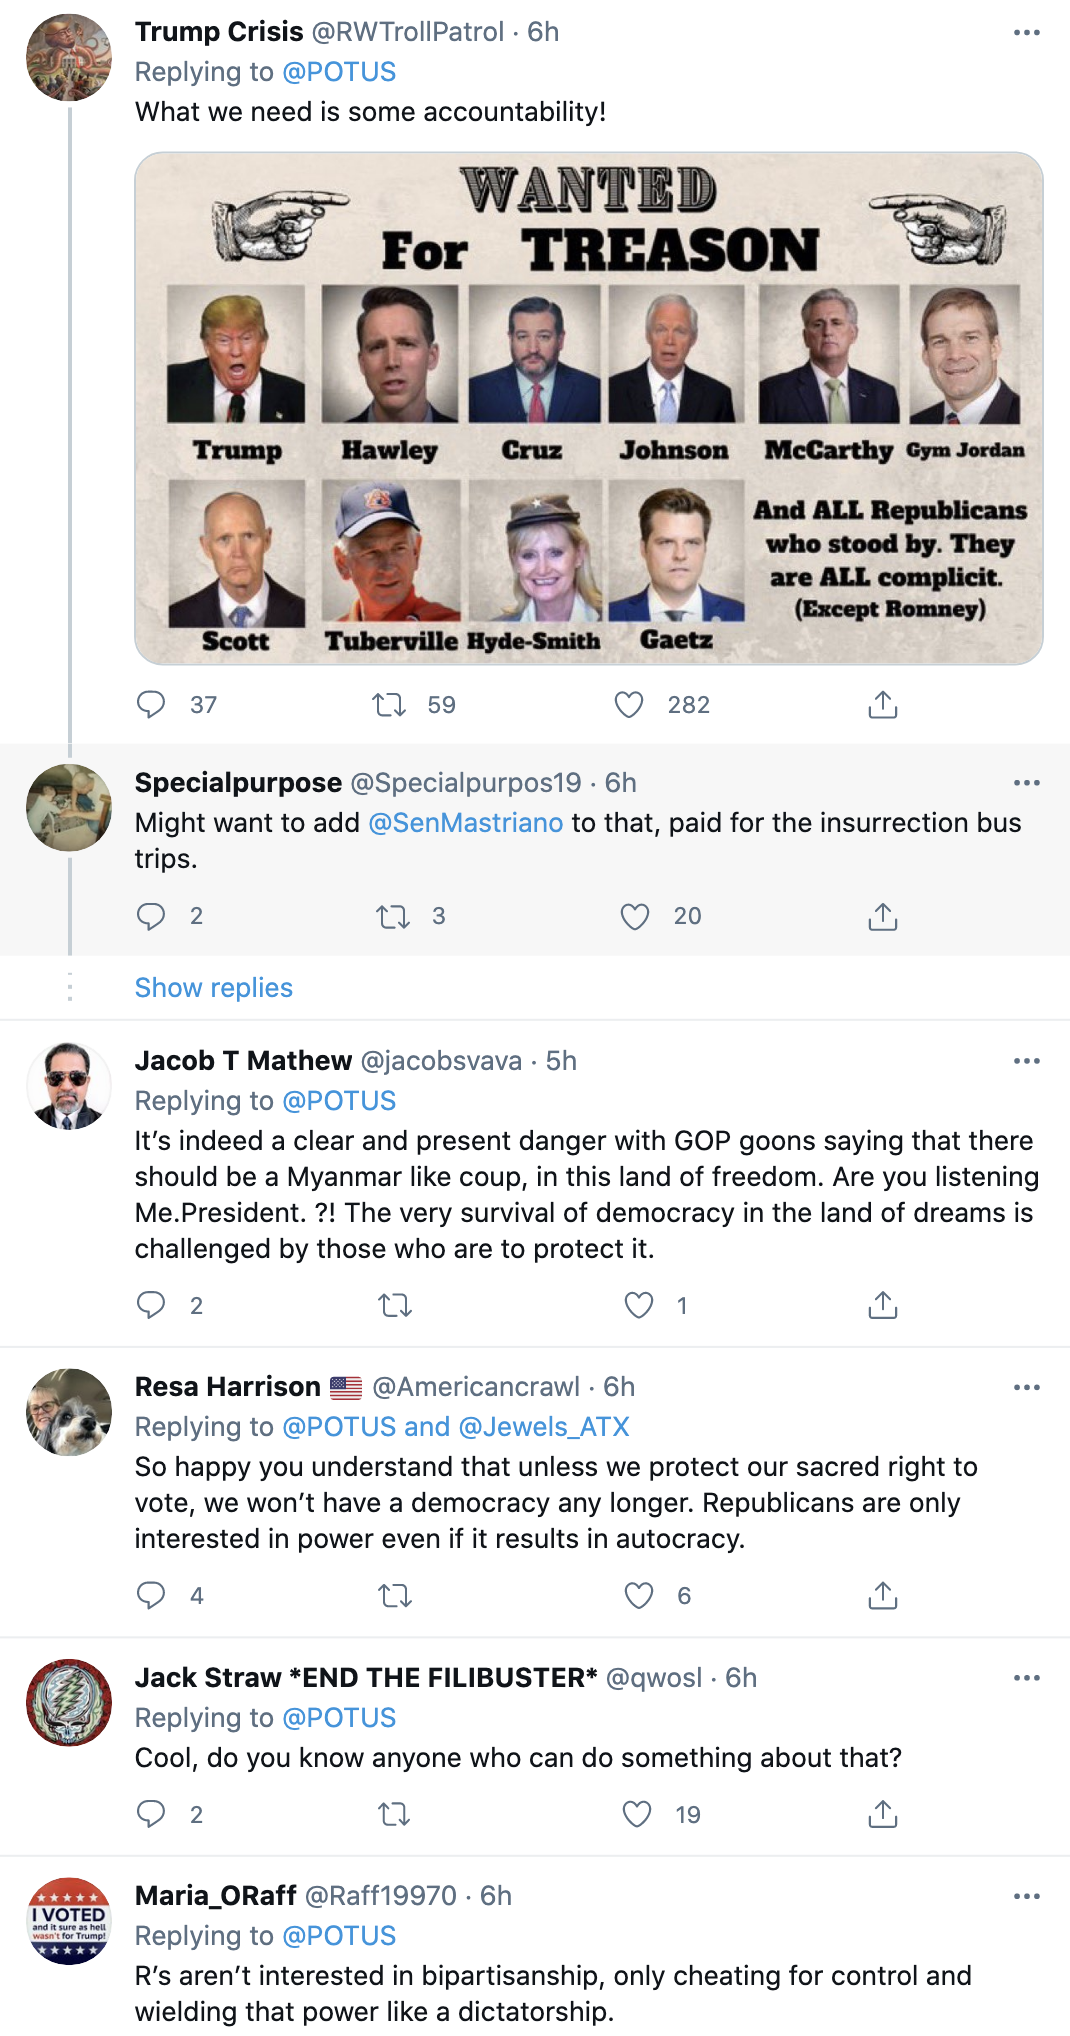 Screen-Shot-2021-06-02-at-2.59.47-PM Biden Pushes For Power Move To Protect Voting From GOP Traitors Corruption Featured National Security Politics Top Stories